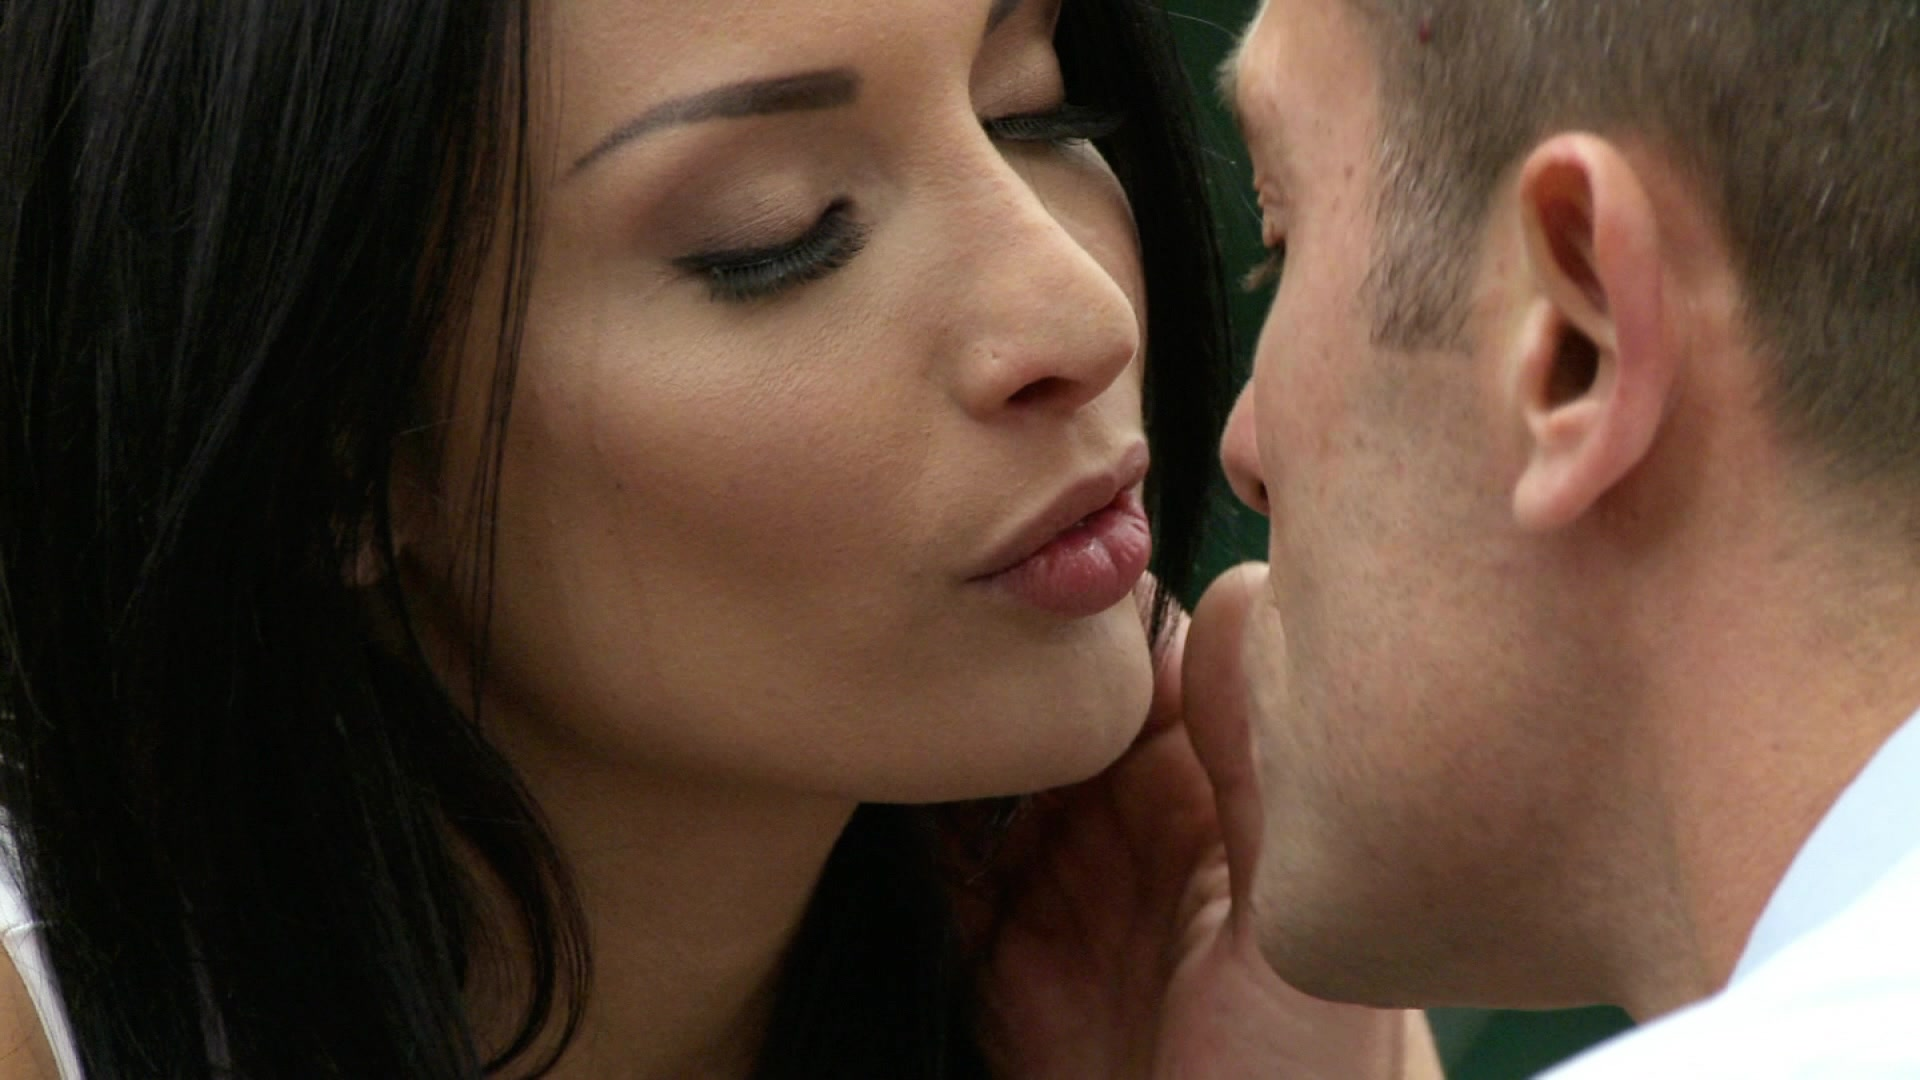 Scene with Anissa Kate - image 3 out of 20